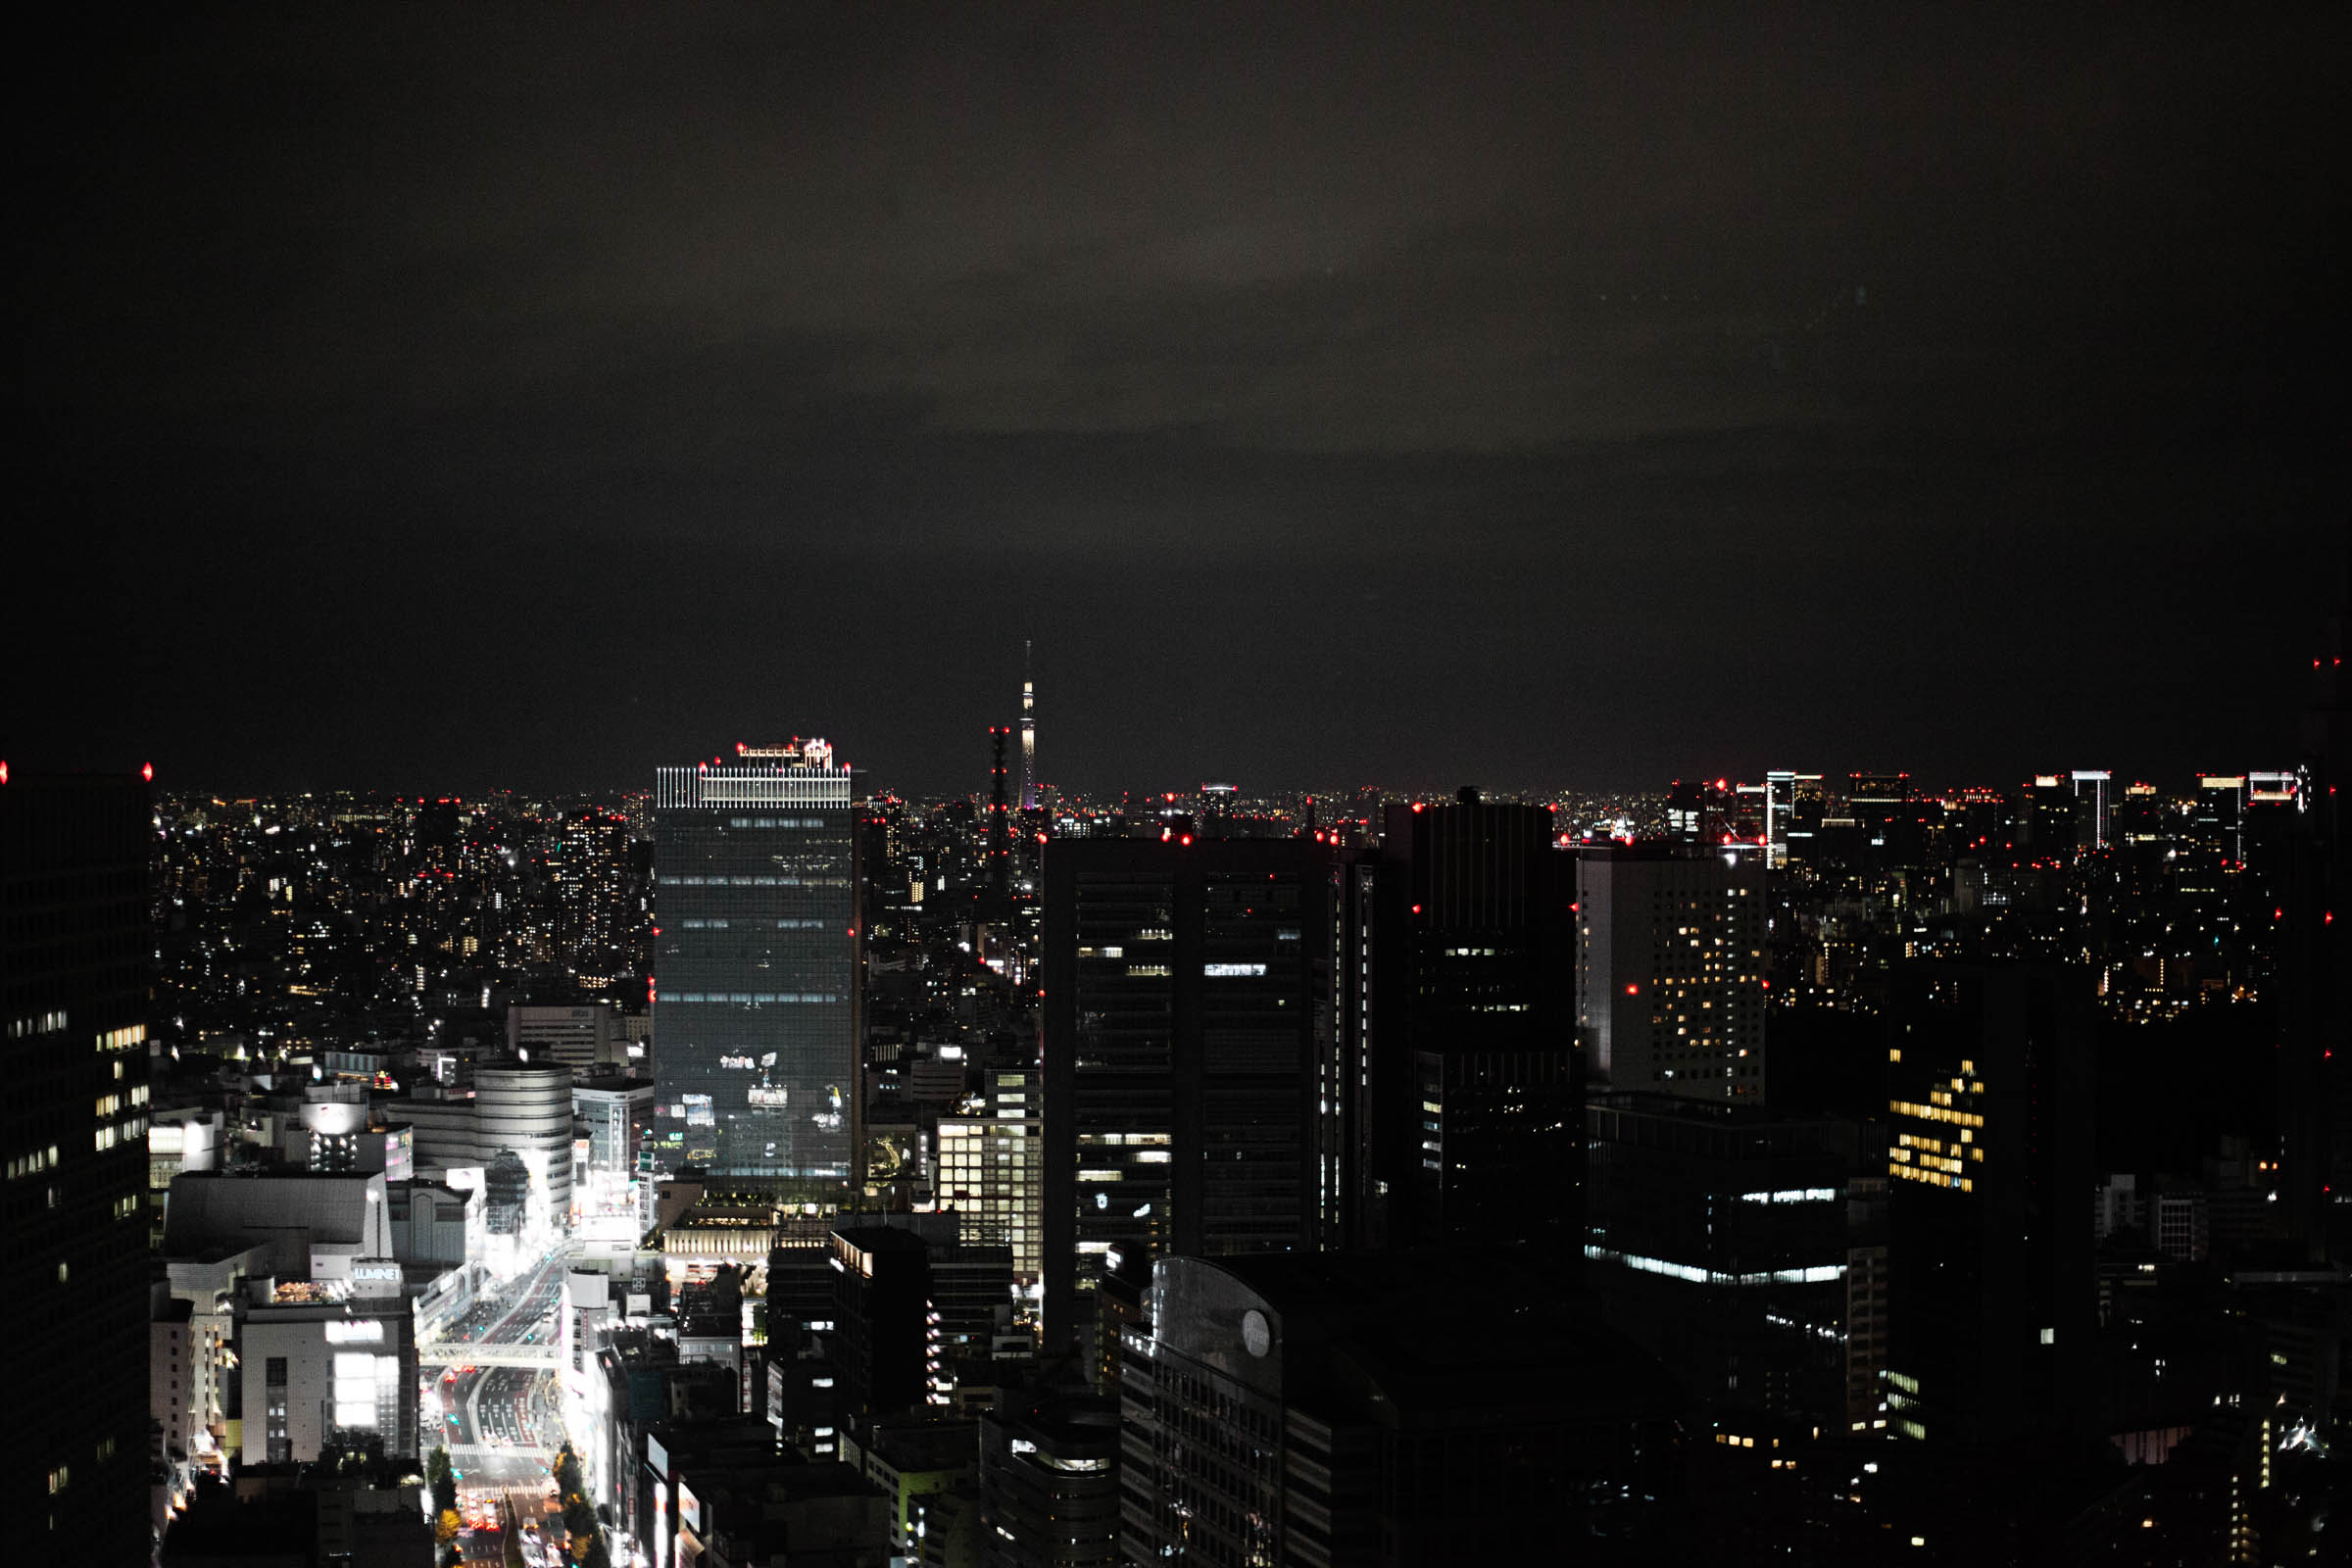 Chacon Images_Japan_Web-137.jpg